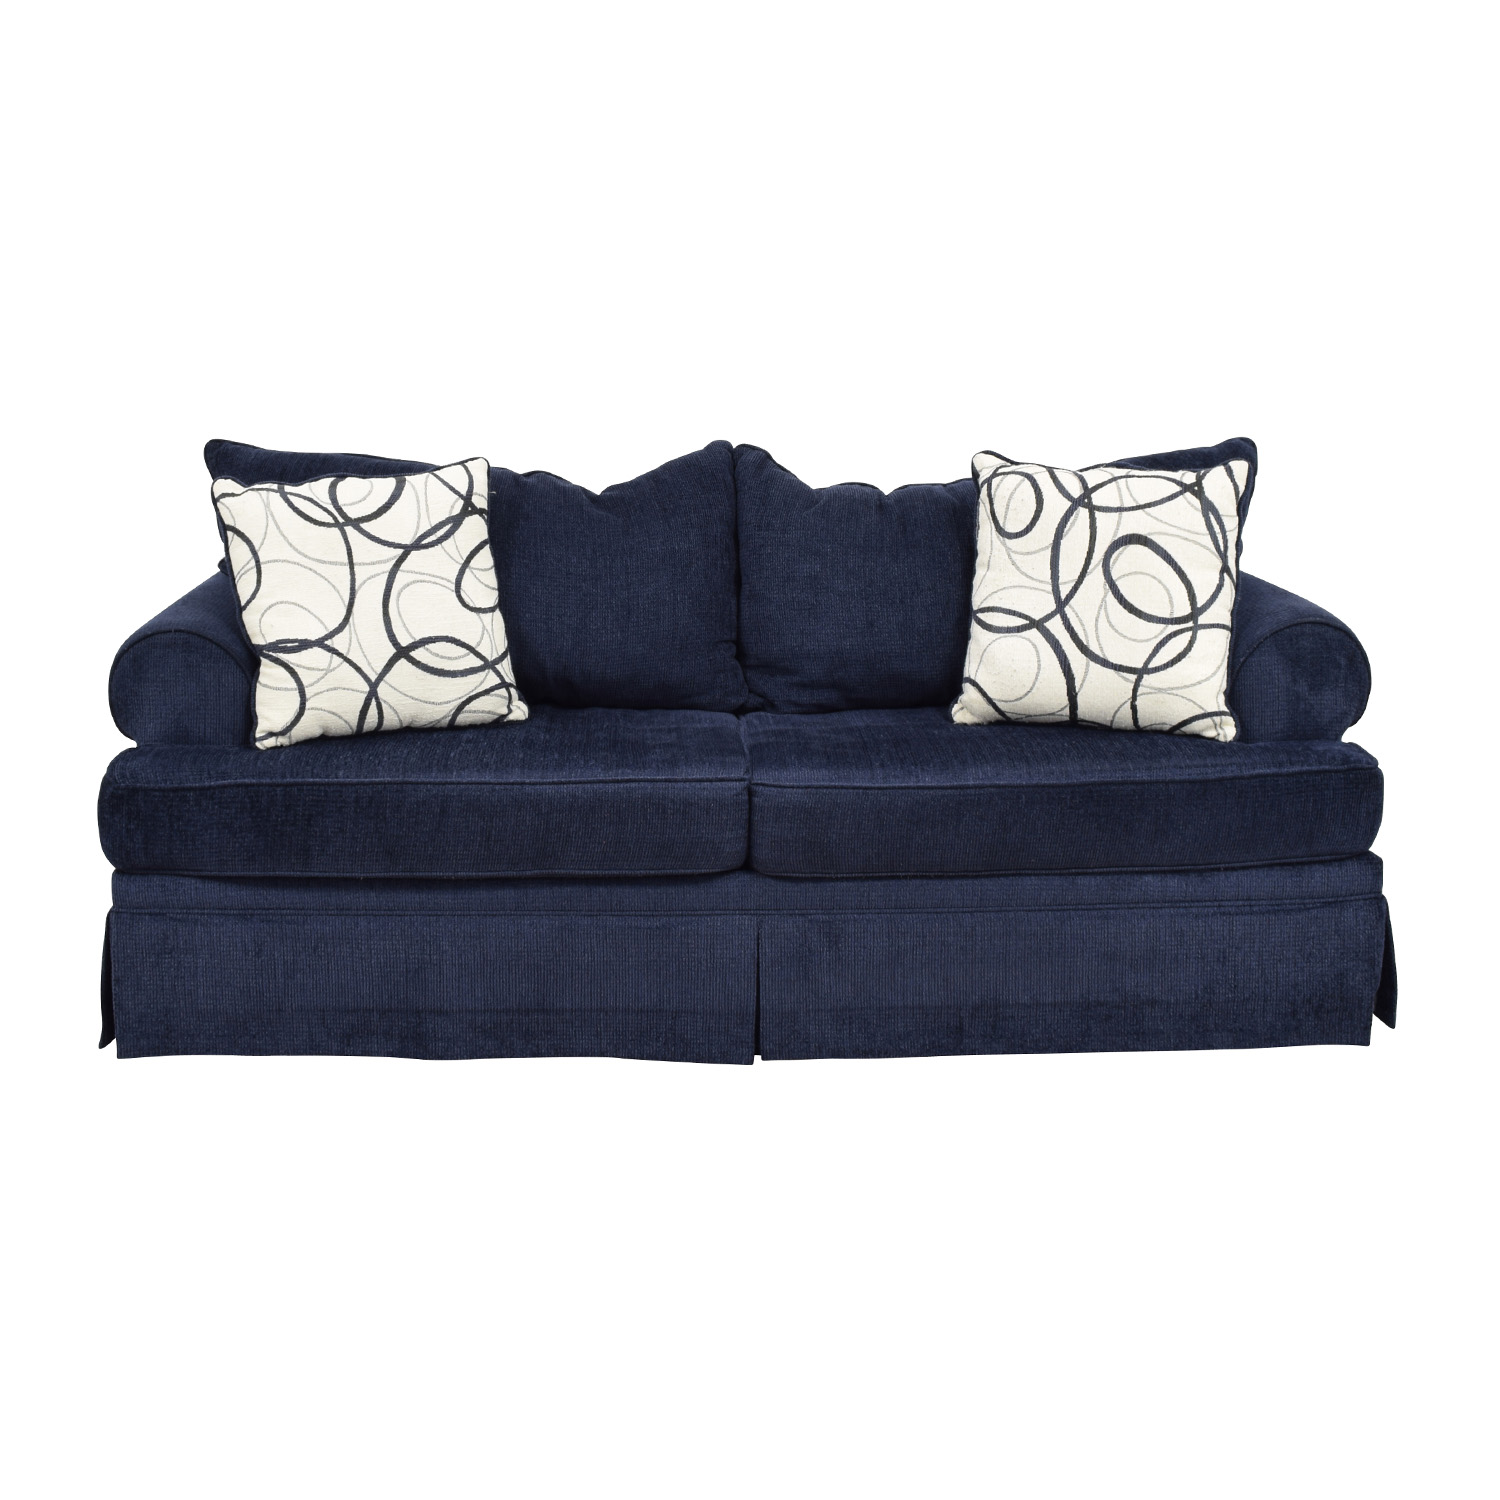 66% OFF - Bob\'s Discount Furniture Bob\'s Furniture Deep Blue Sofa / Sofas